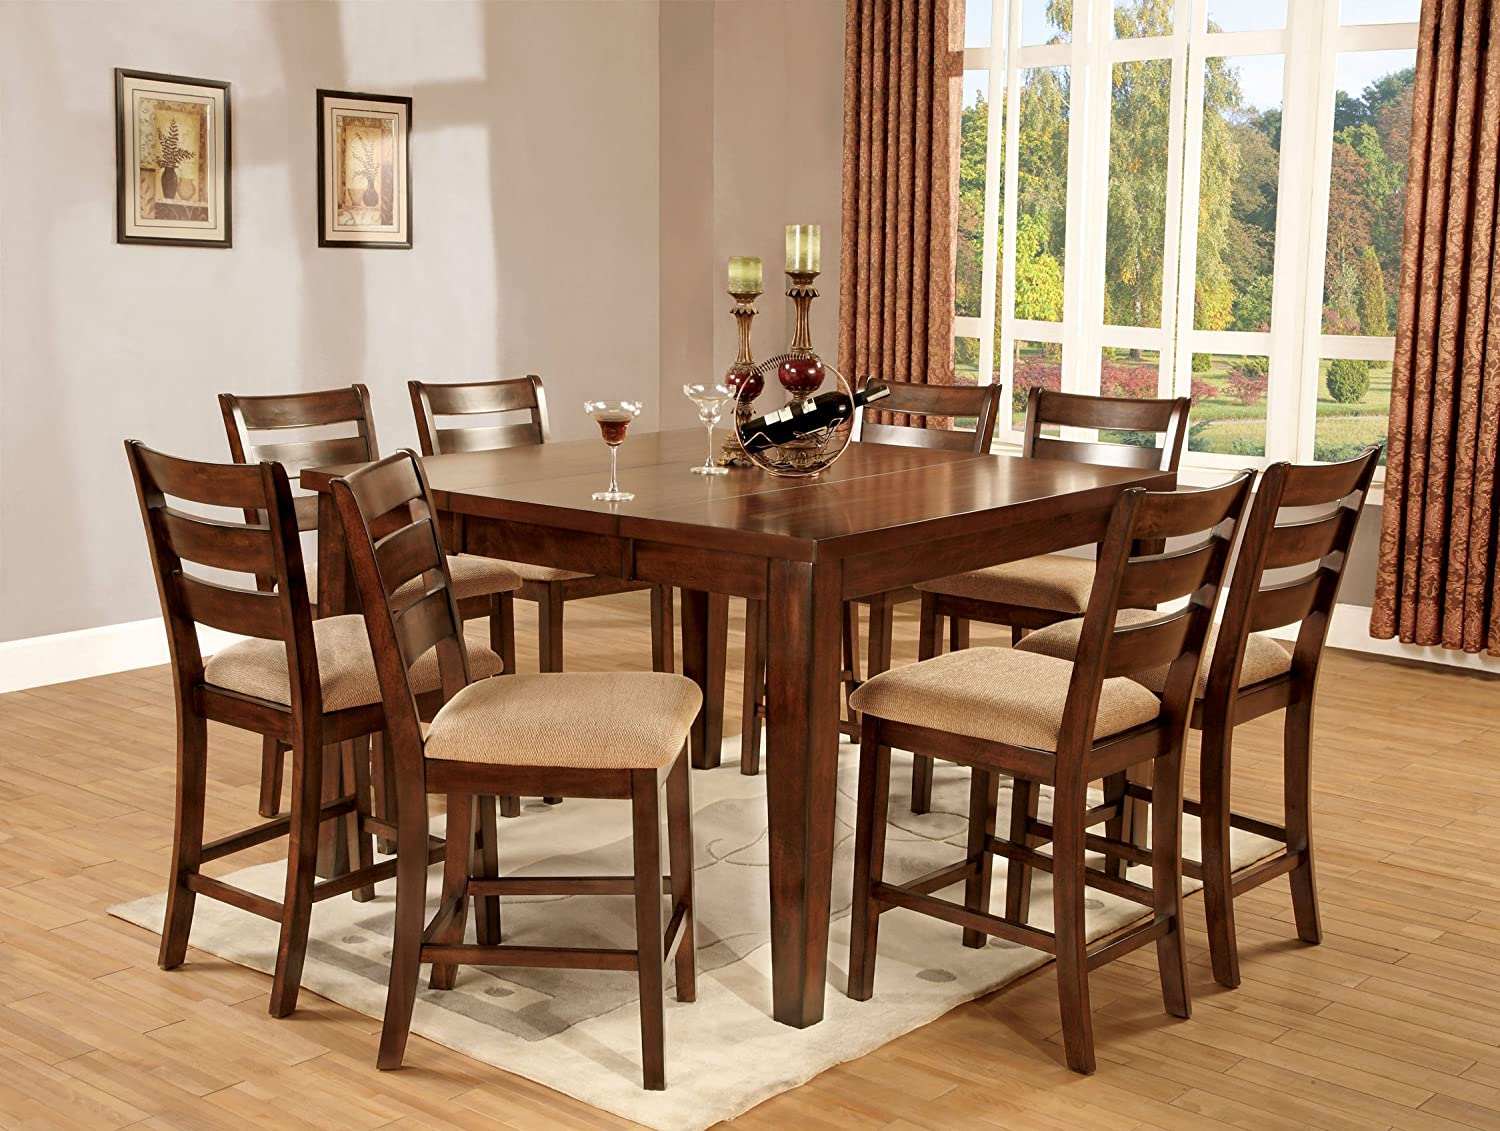 Furniture of America Terri 7-Piece Mission Style Counter Height Table Set with 18-Inch Leaf, Antique Oak Finish